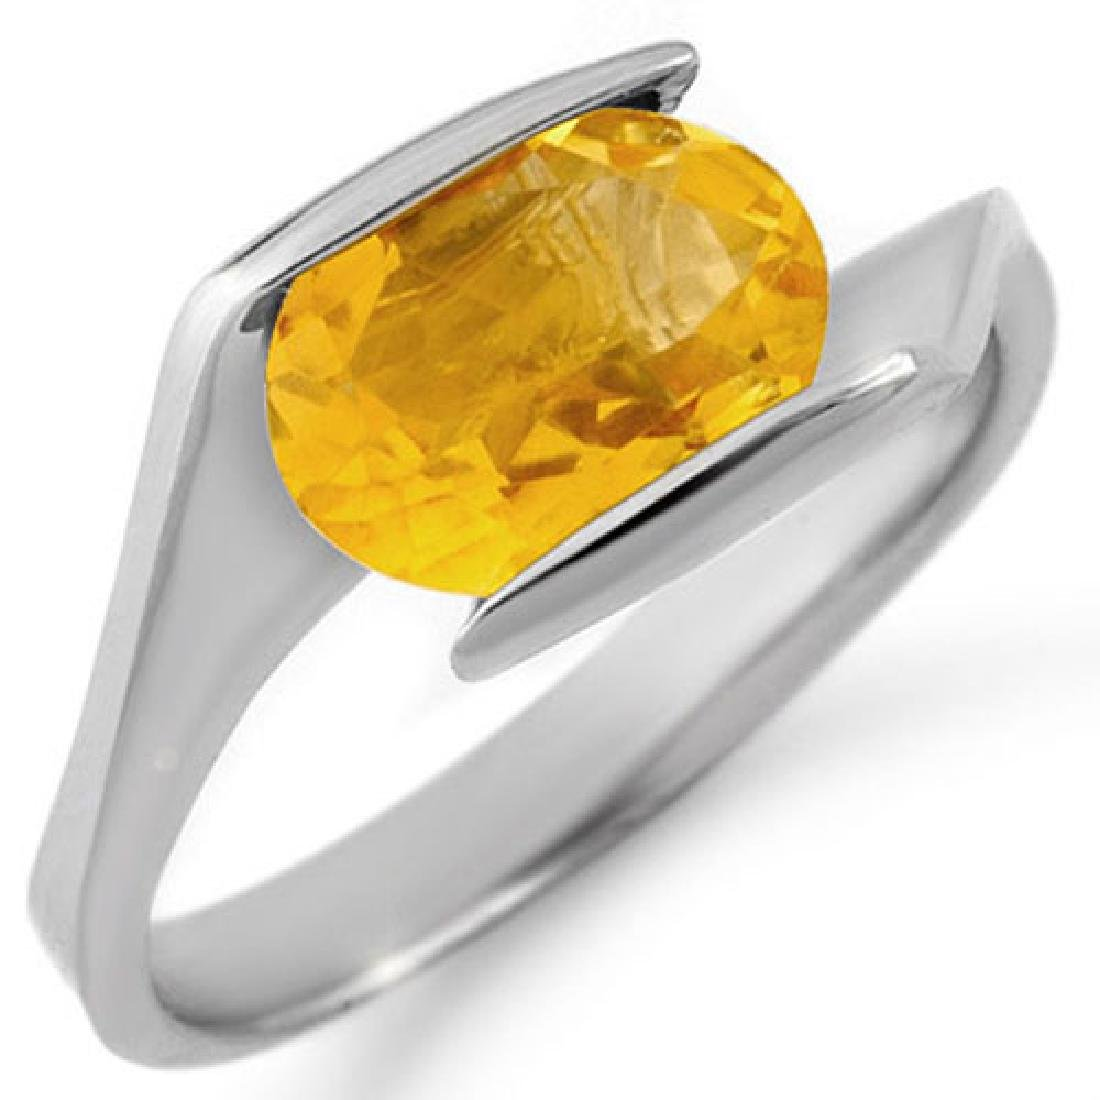 2.0 CTW Citrine Ring 10K White Gold